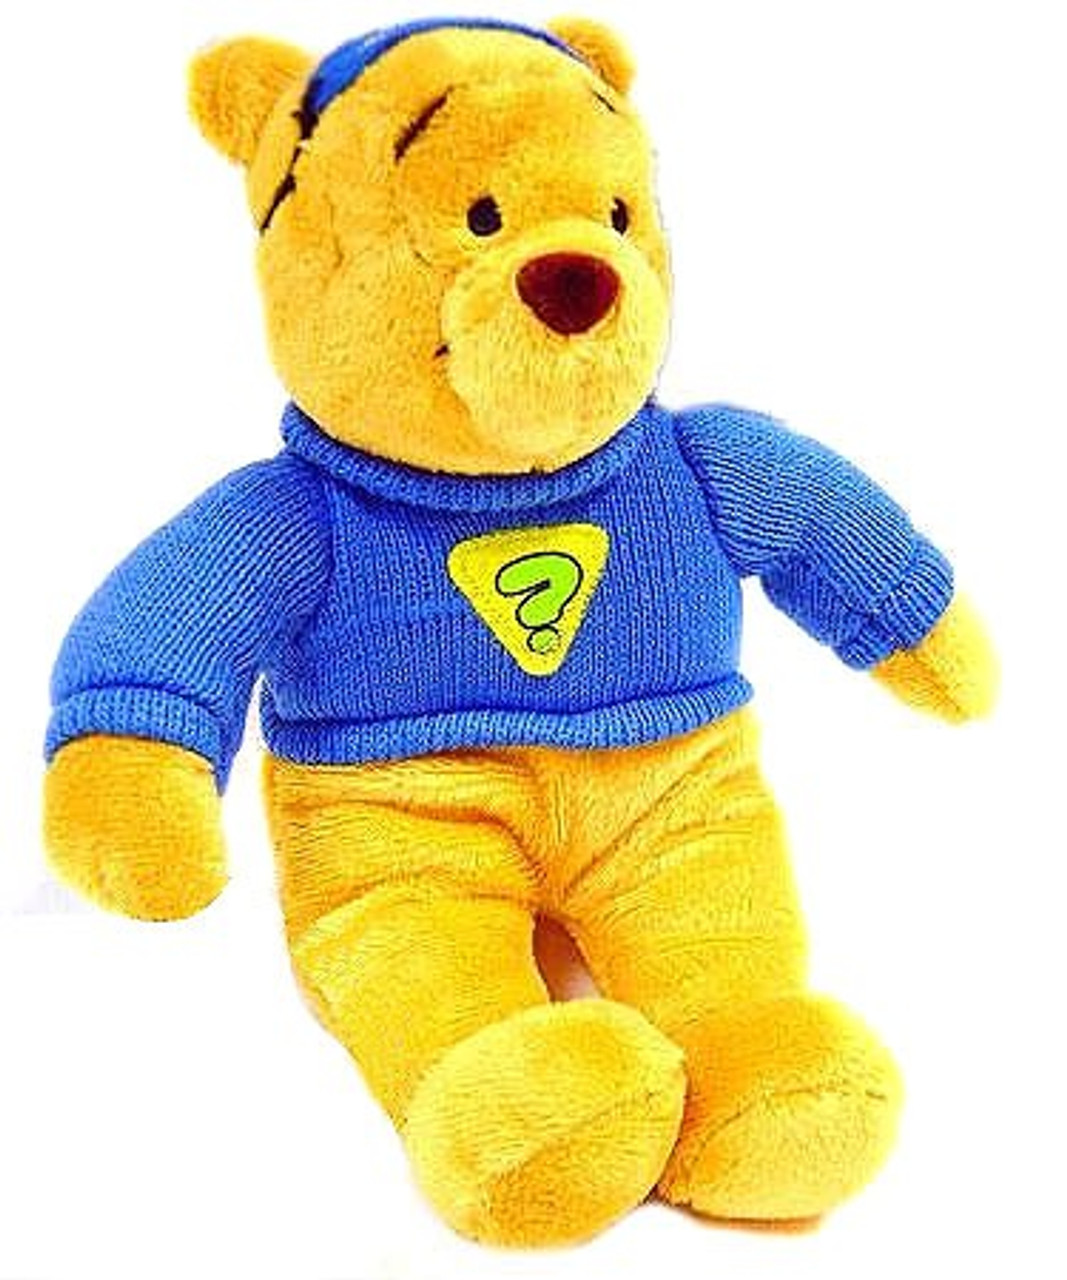 Disney Winnie the Pooh Exclusive 5-Inch Plush [Super Sleuth]